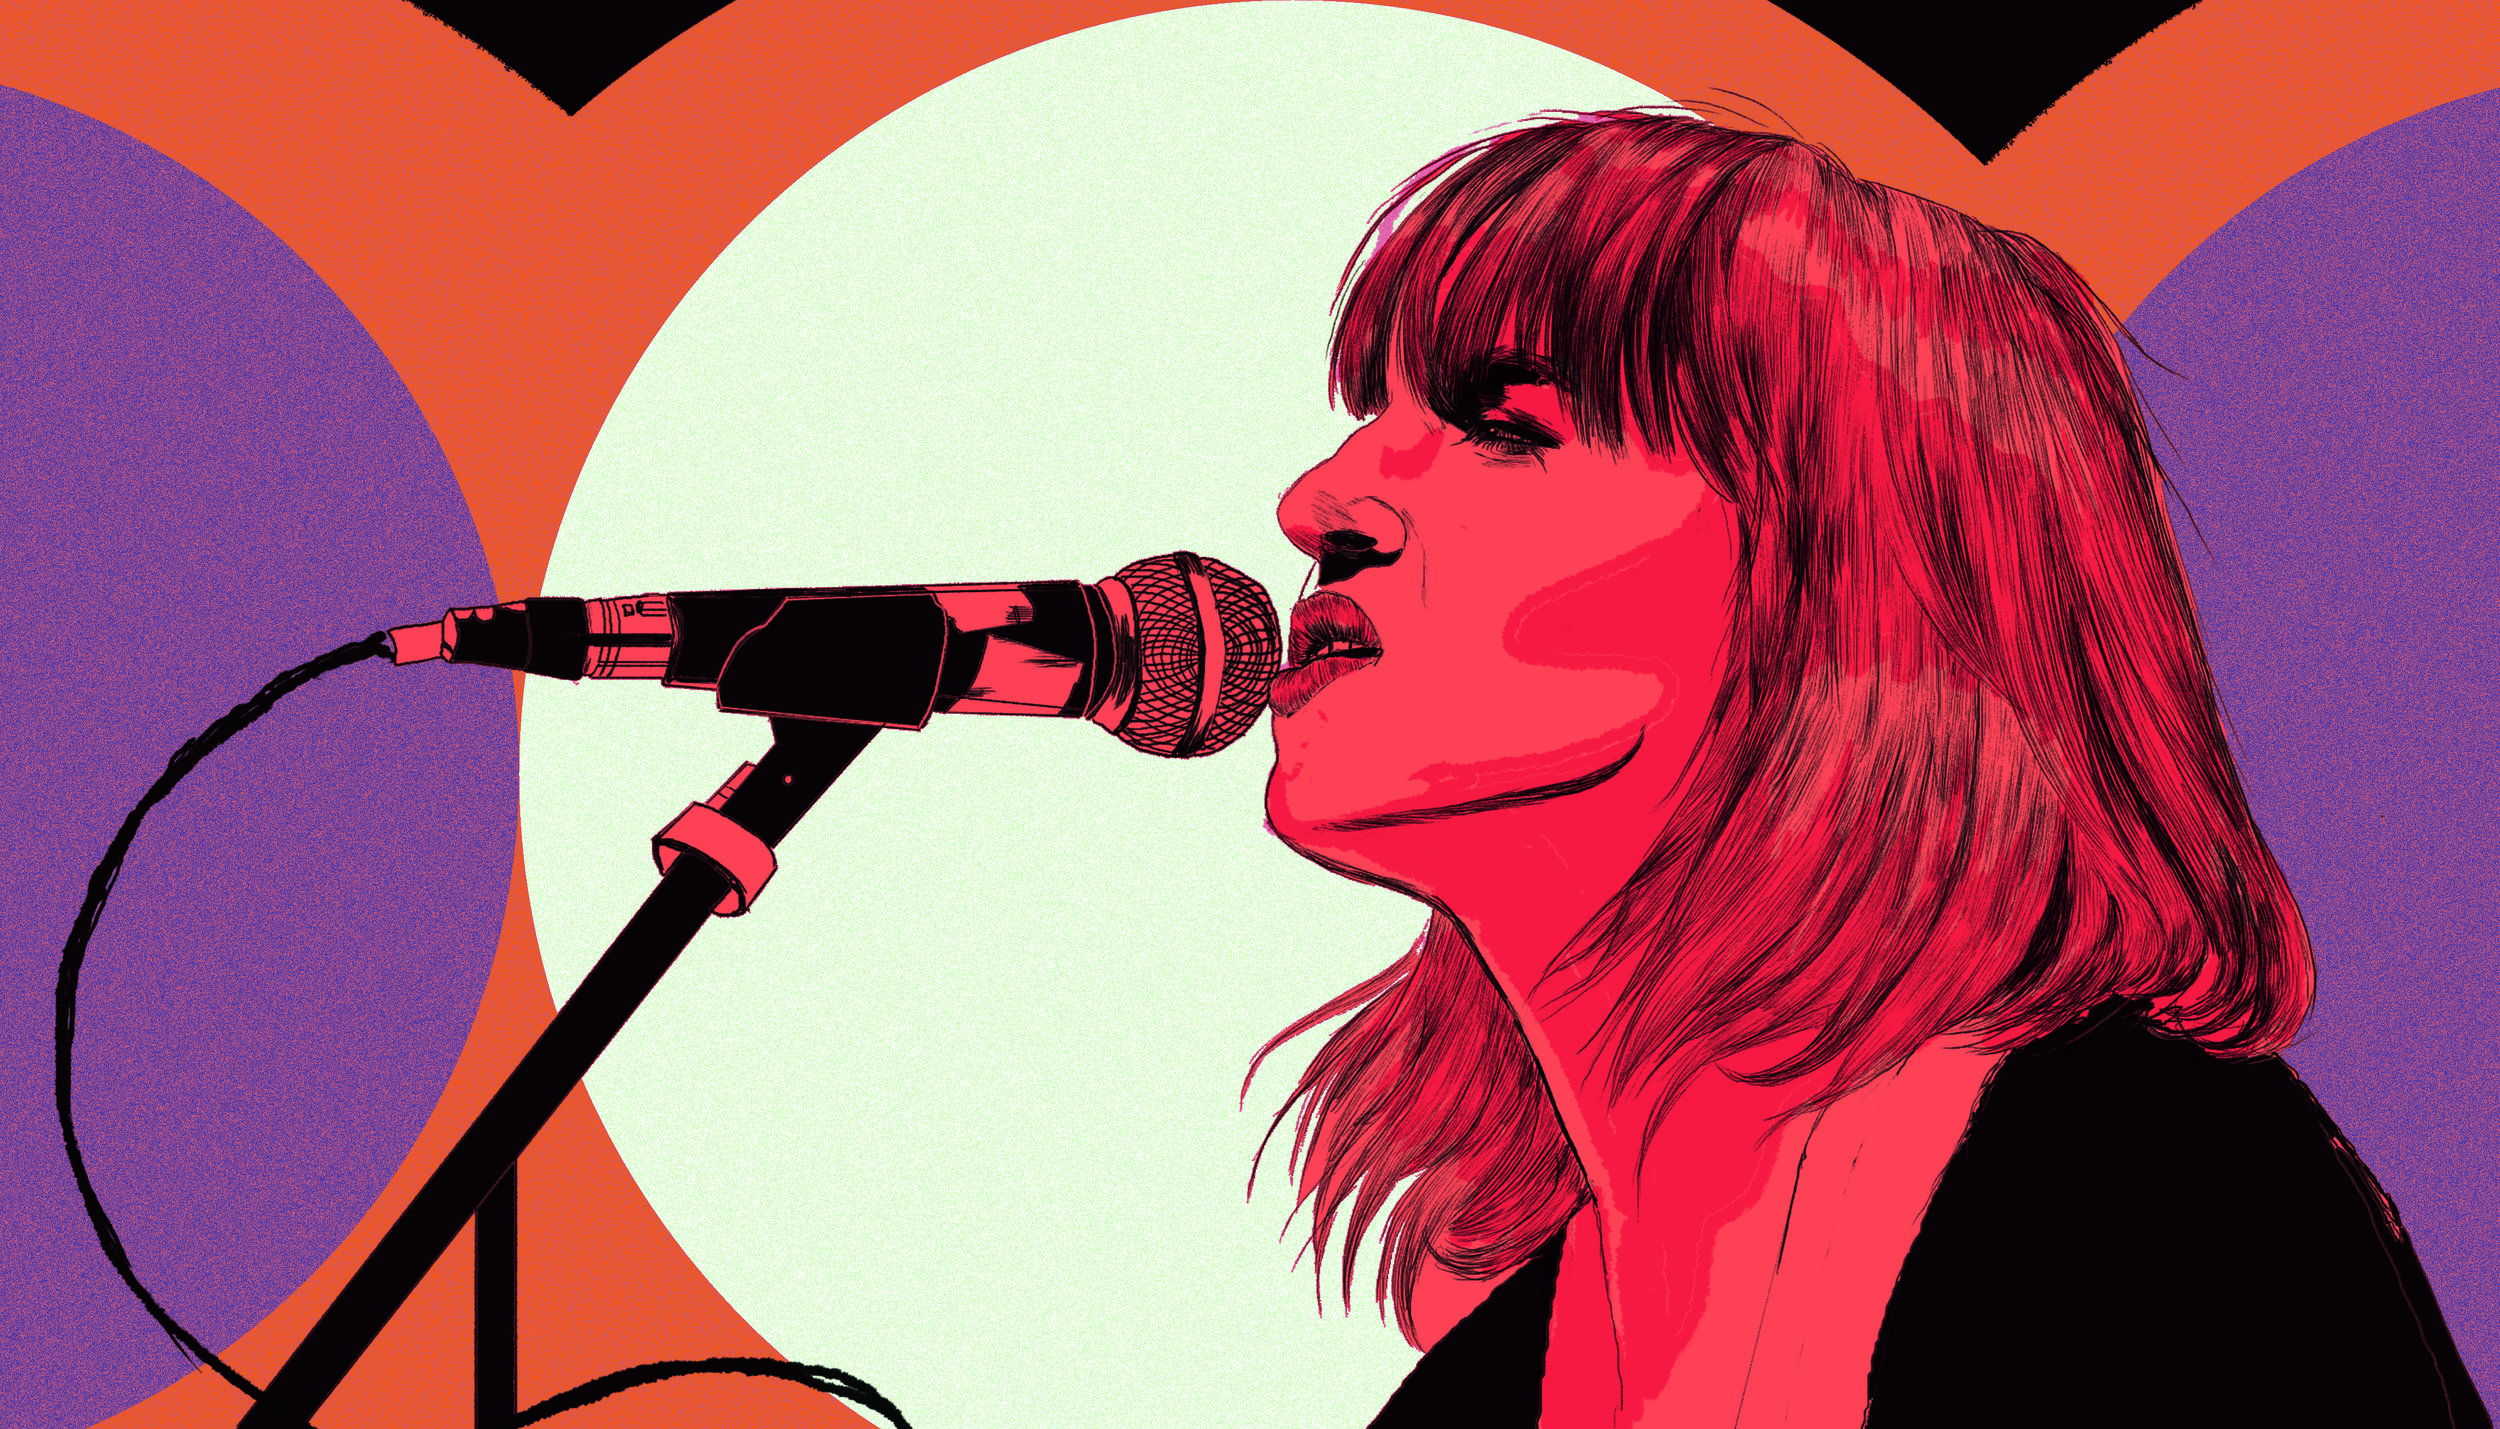 Laura Stevenson for Noisey